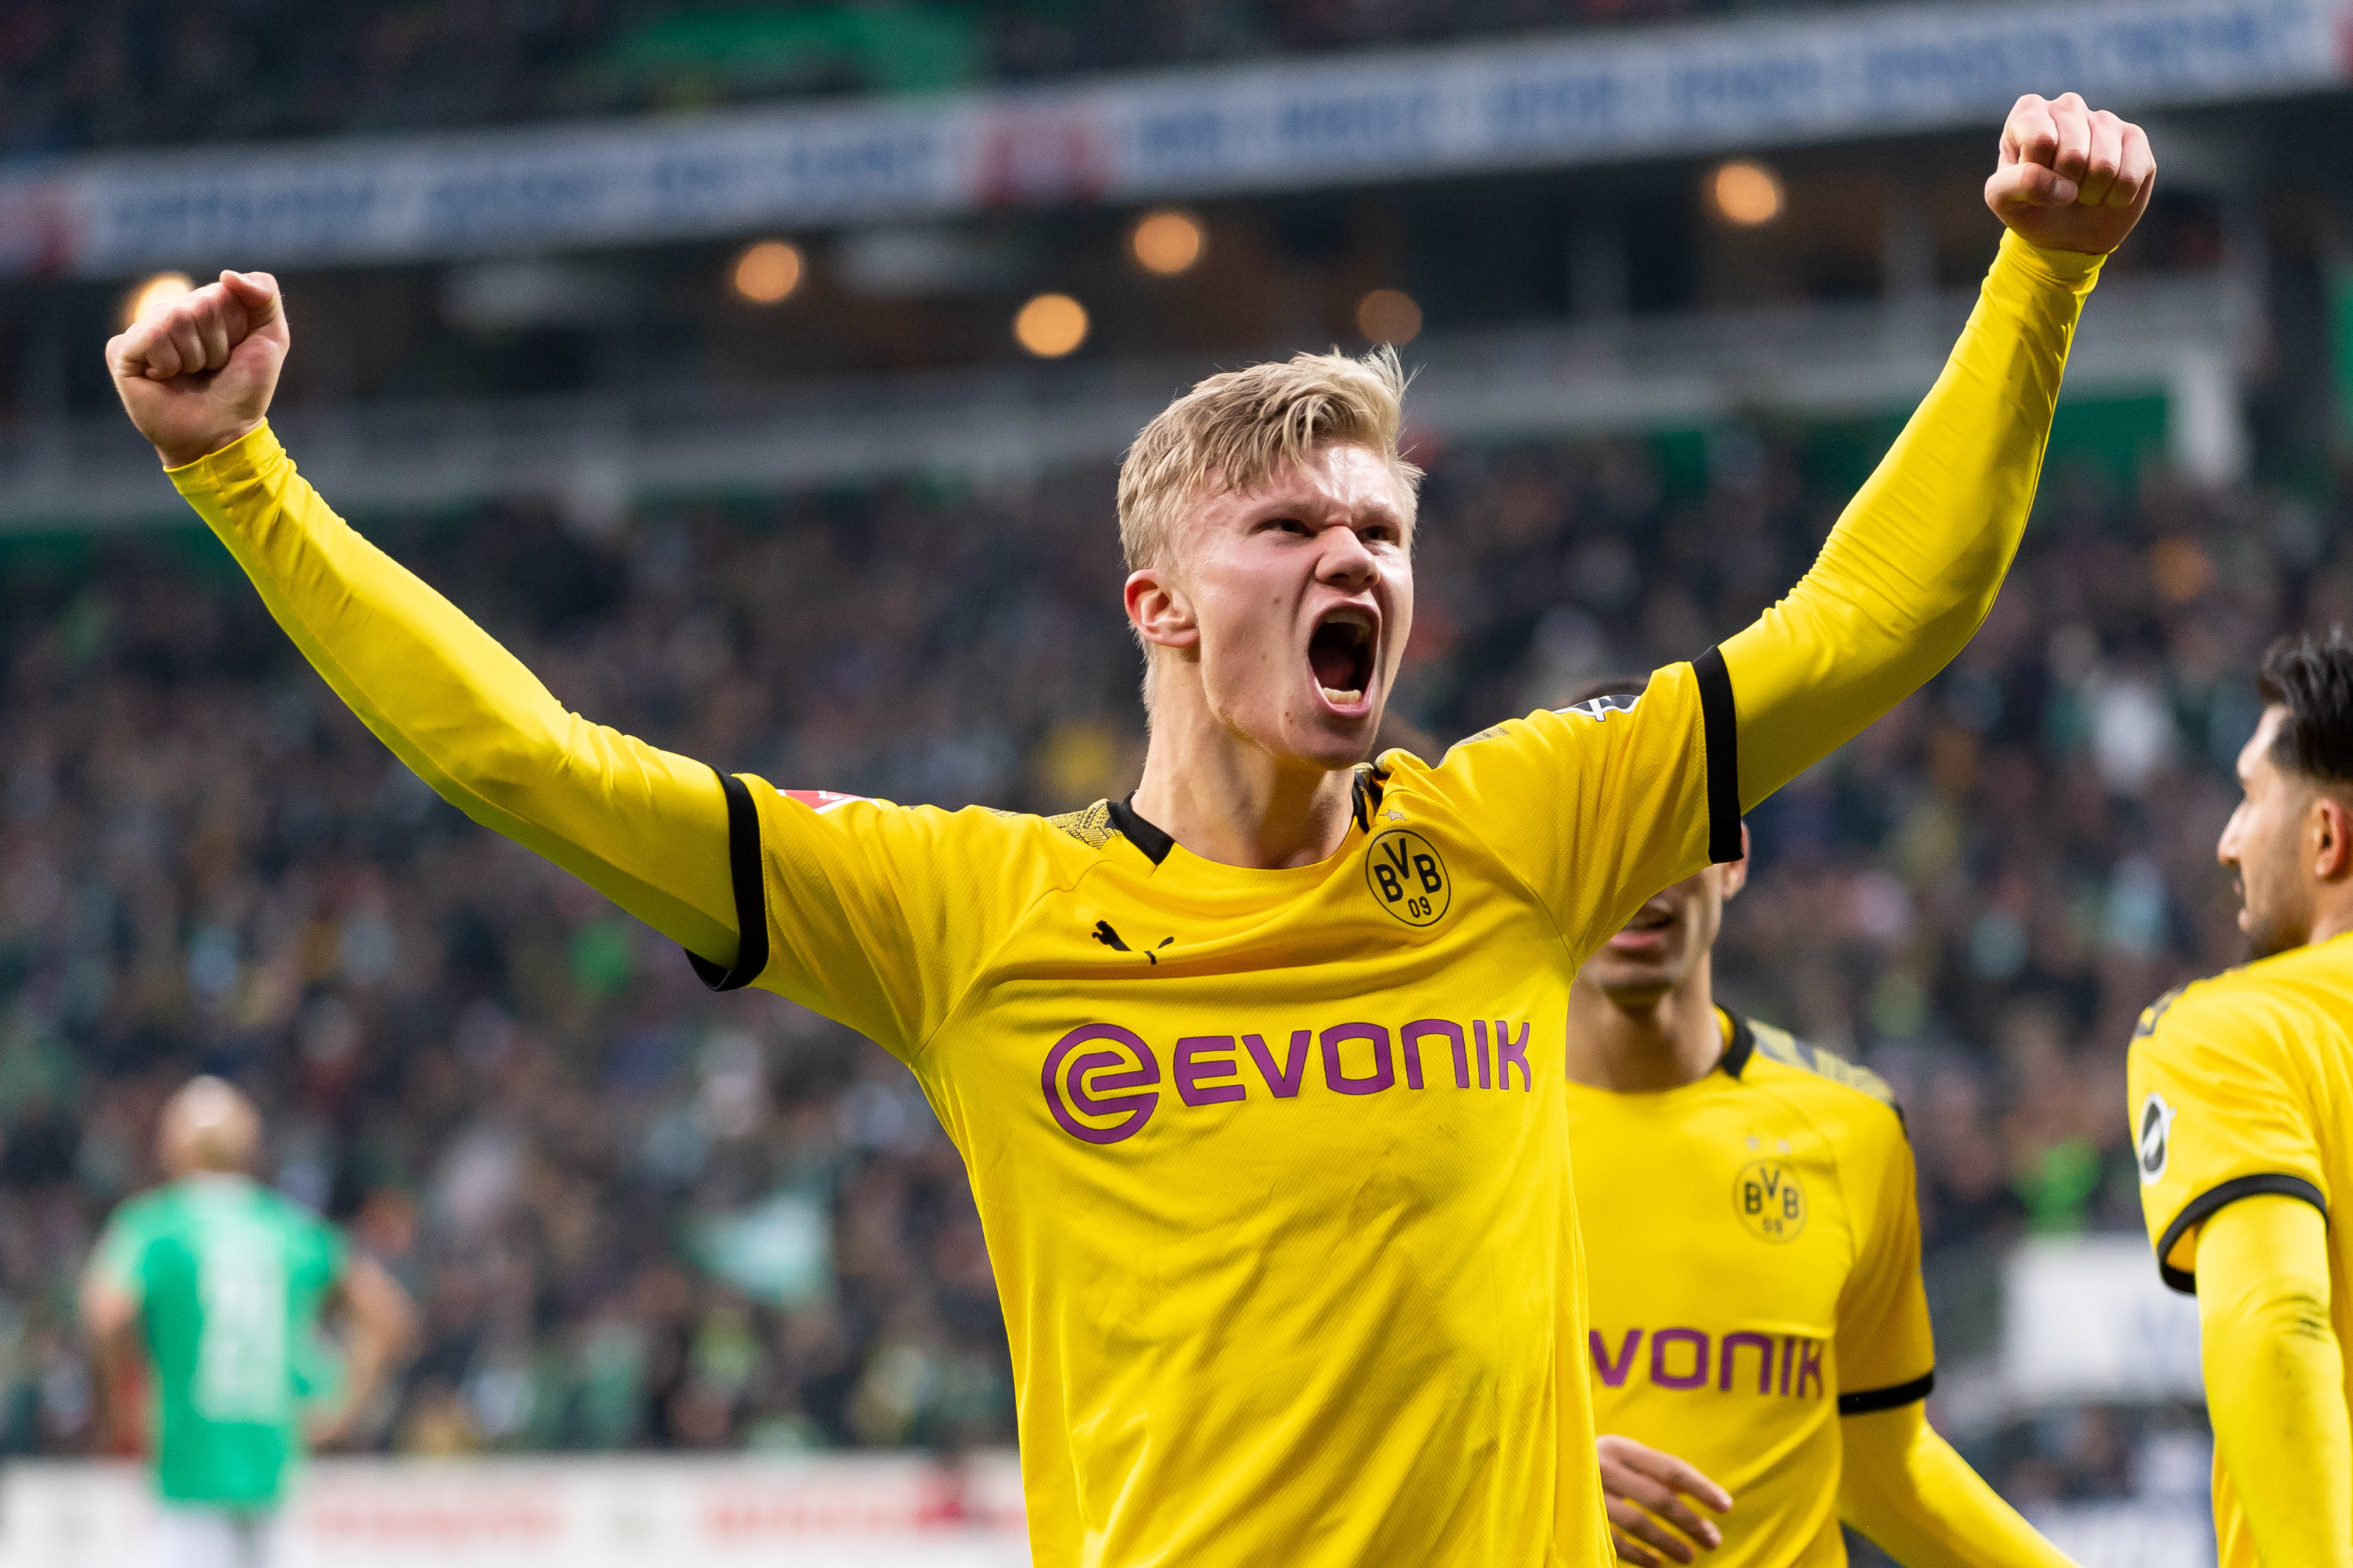 Borussia Dortmund Ace Erling Haaland Reveals His Hunger For Goals